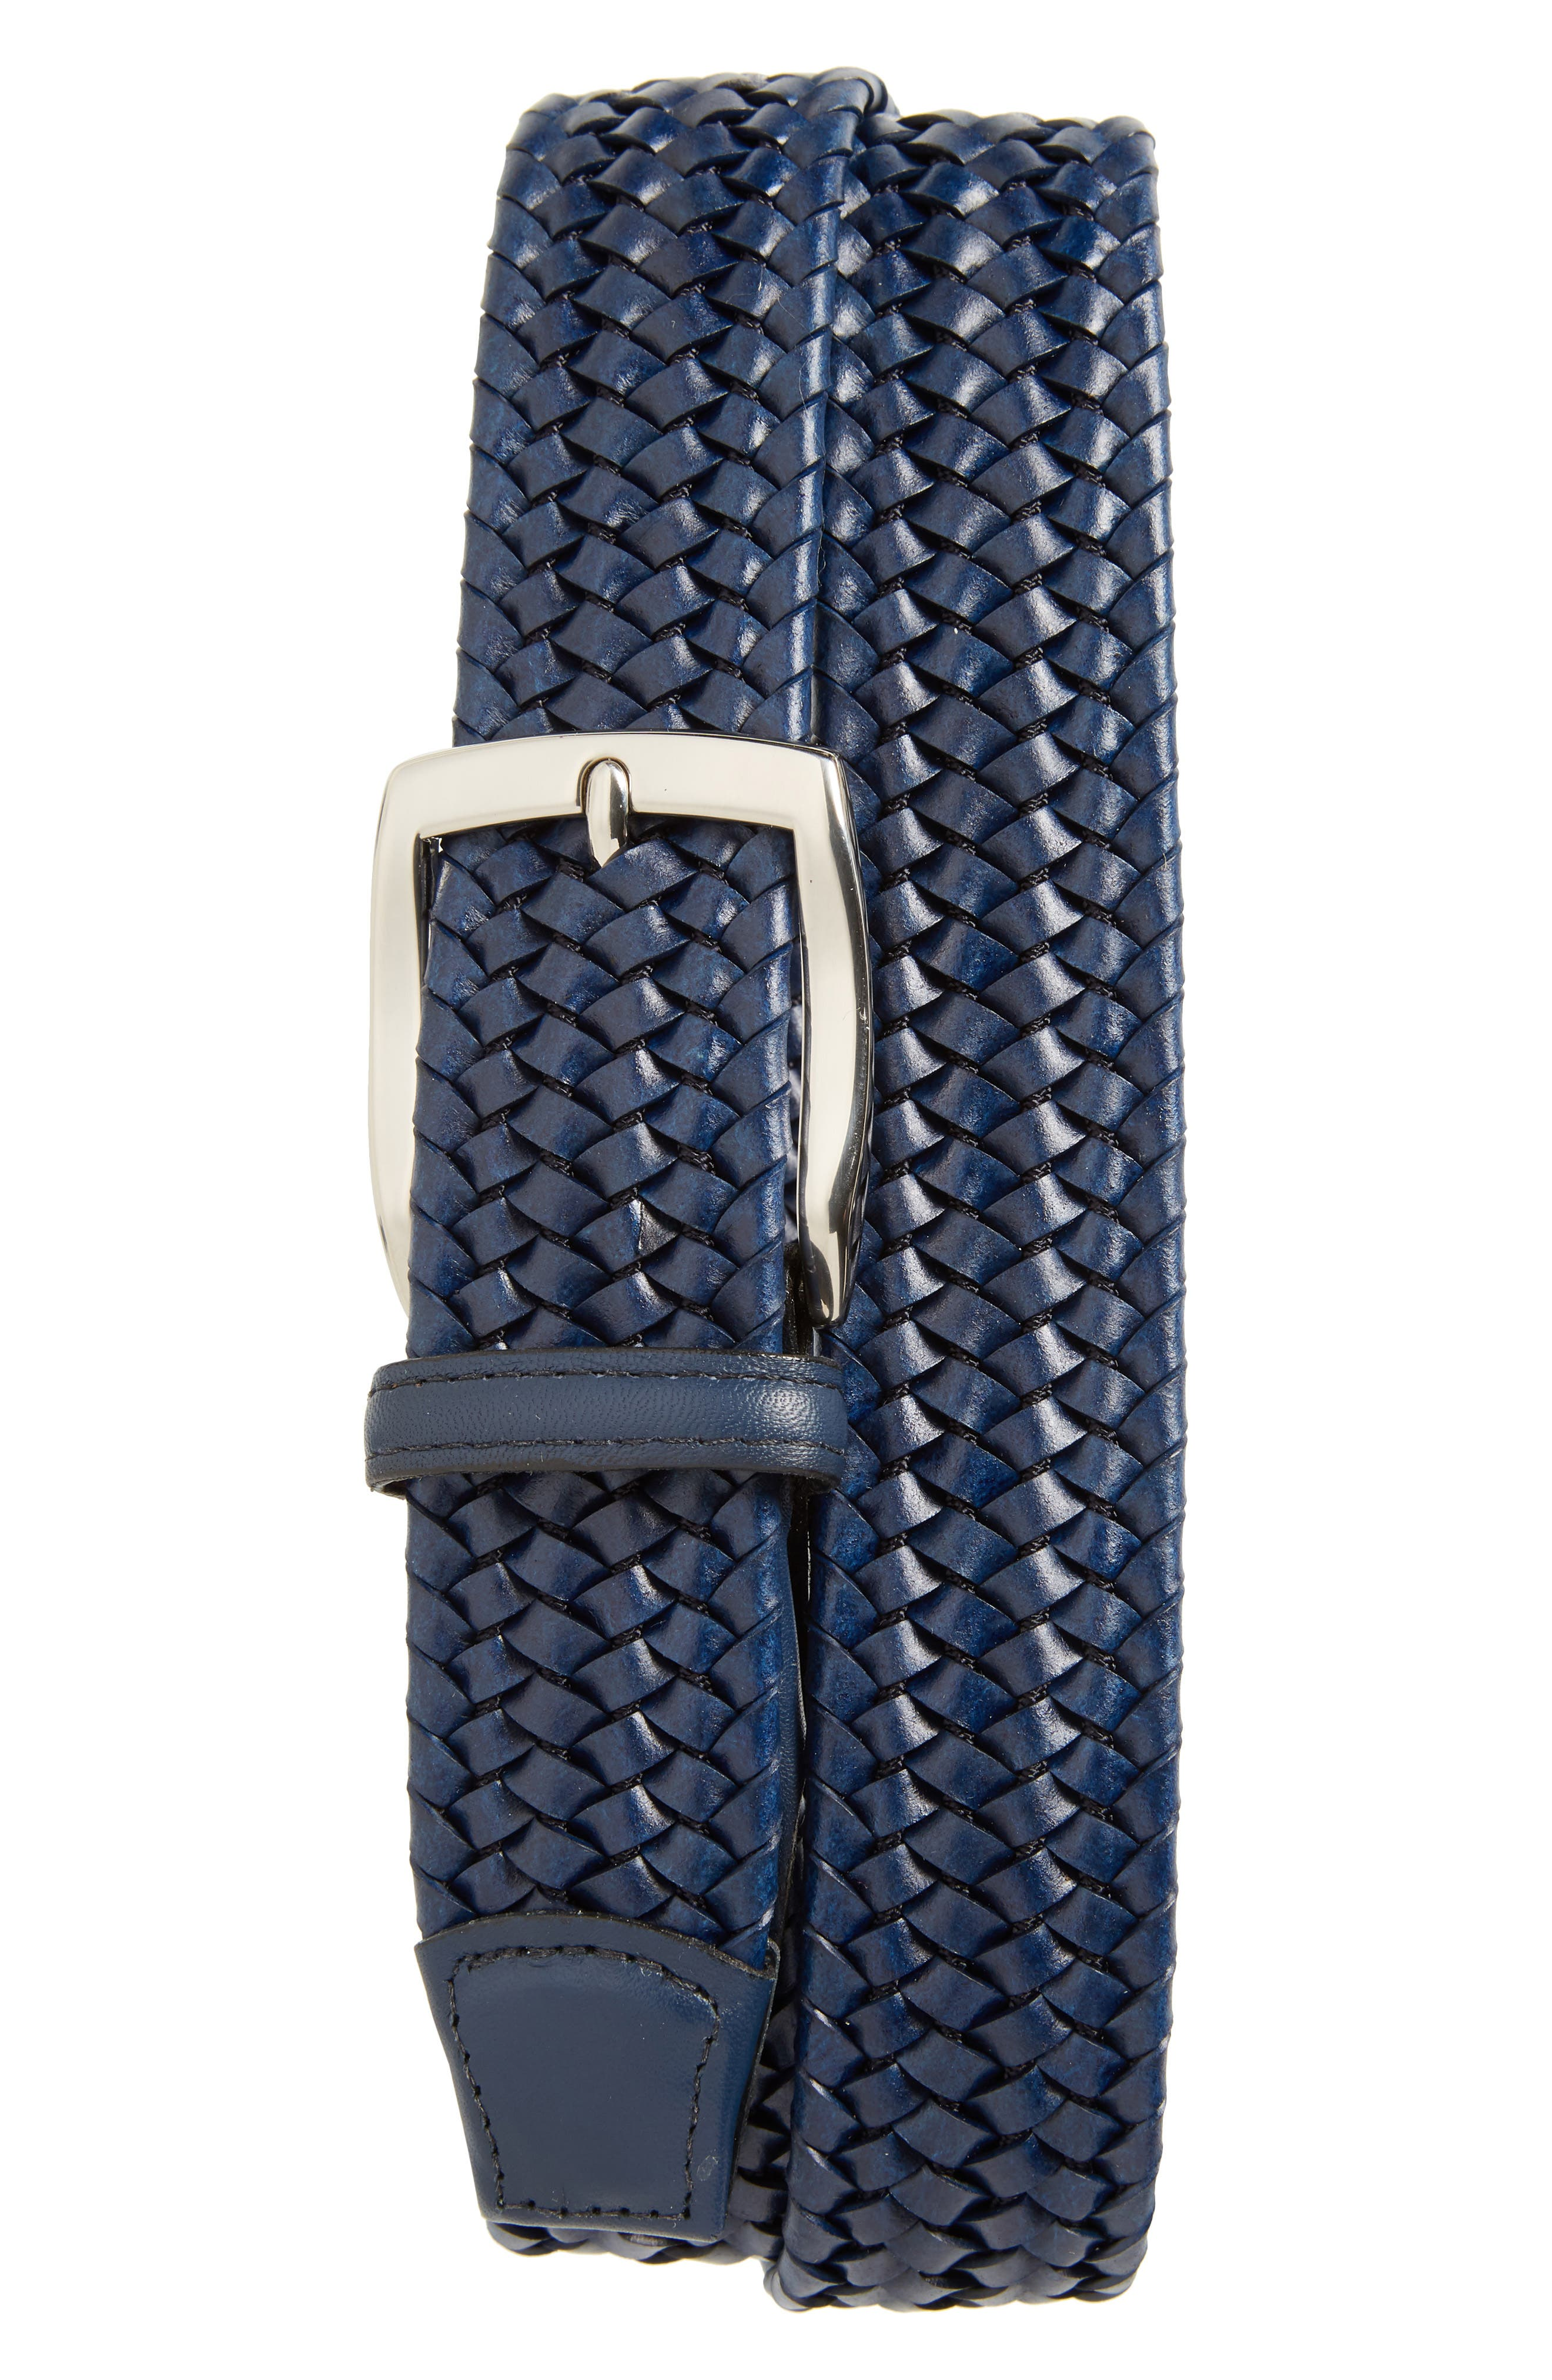 Stretchy woven construction means a flexible fit for an American-made belt with high-shine hardware. Style Name: Torino Woven Stretch Leather Belt. Style Number: 5834332. Available in stores.